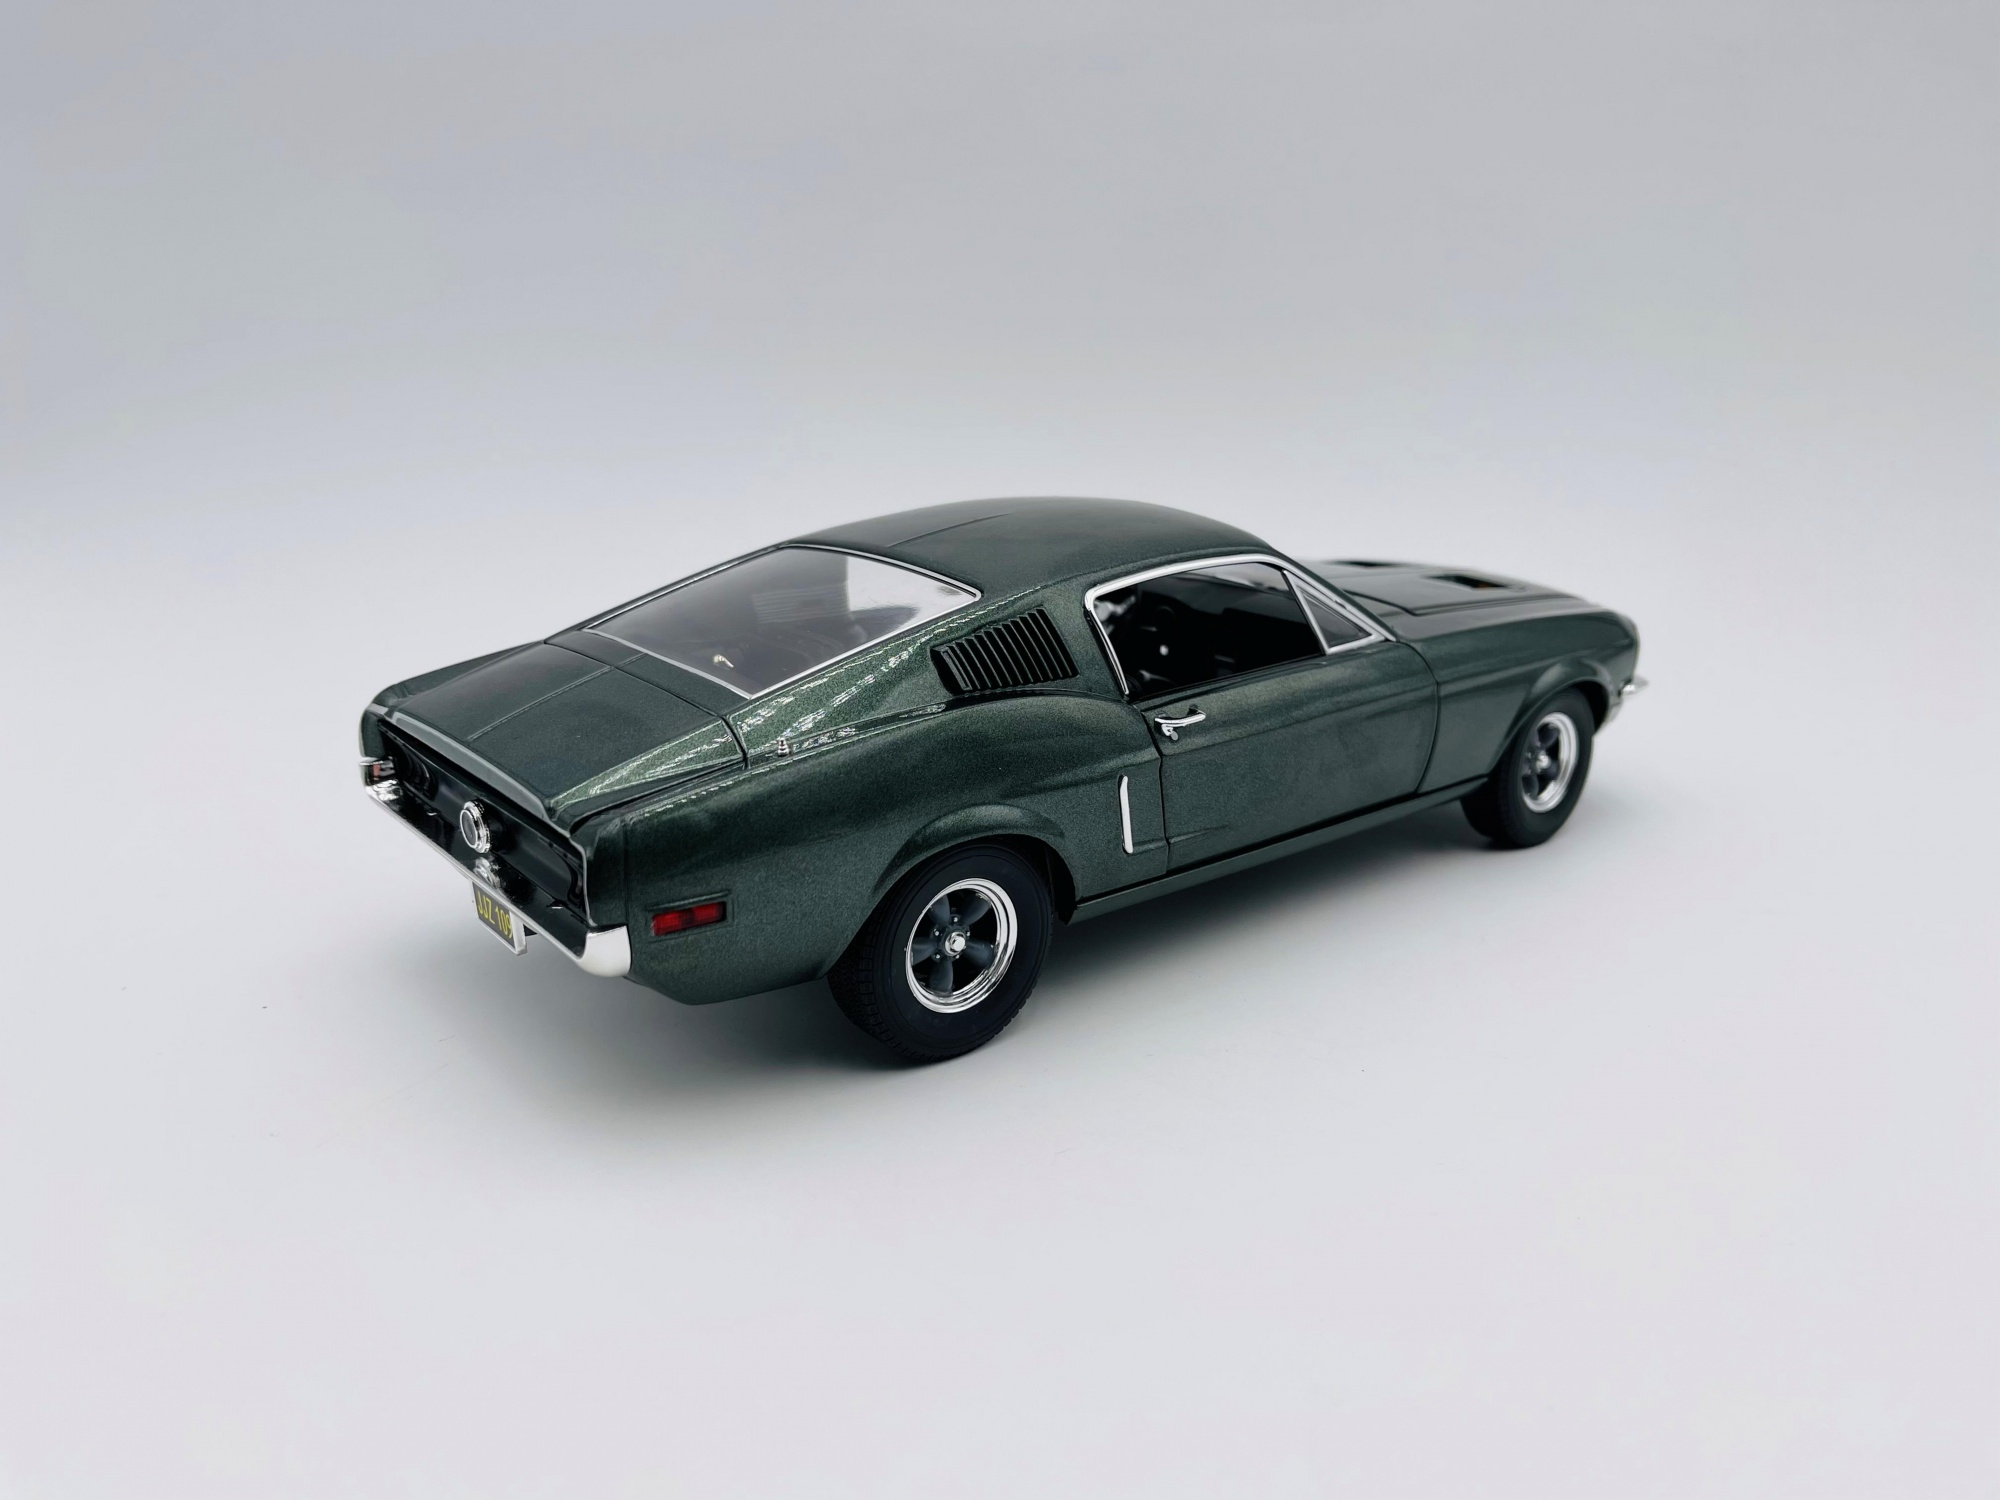 Ford Mustang GT 1968 Steve Mc Queen